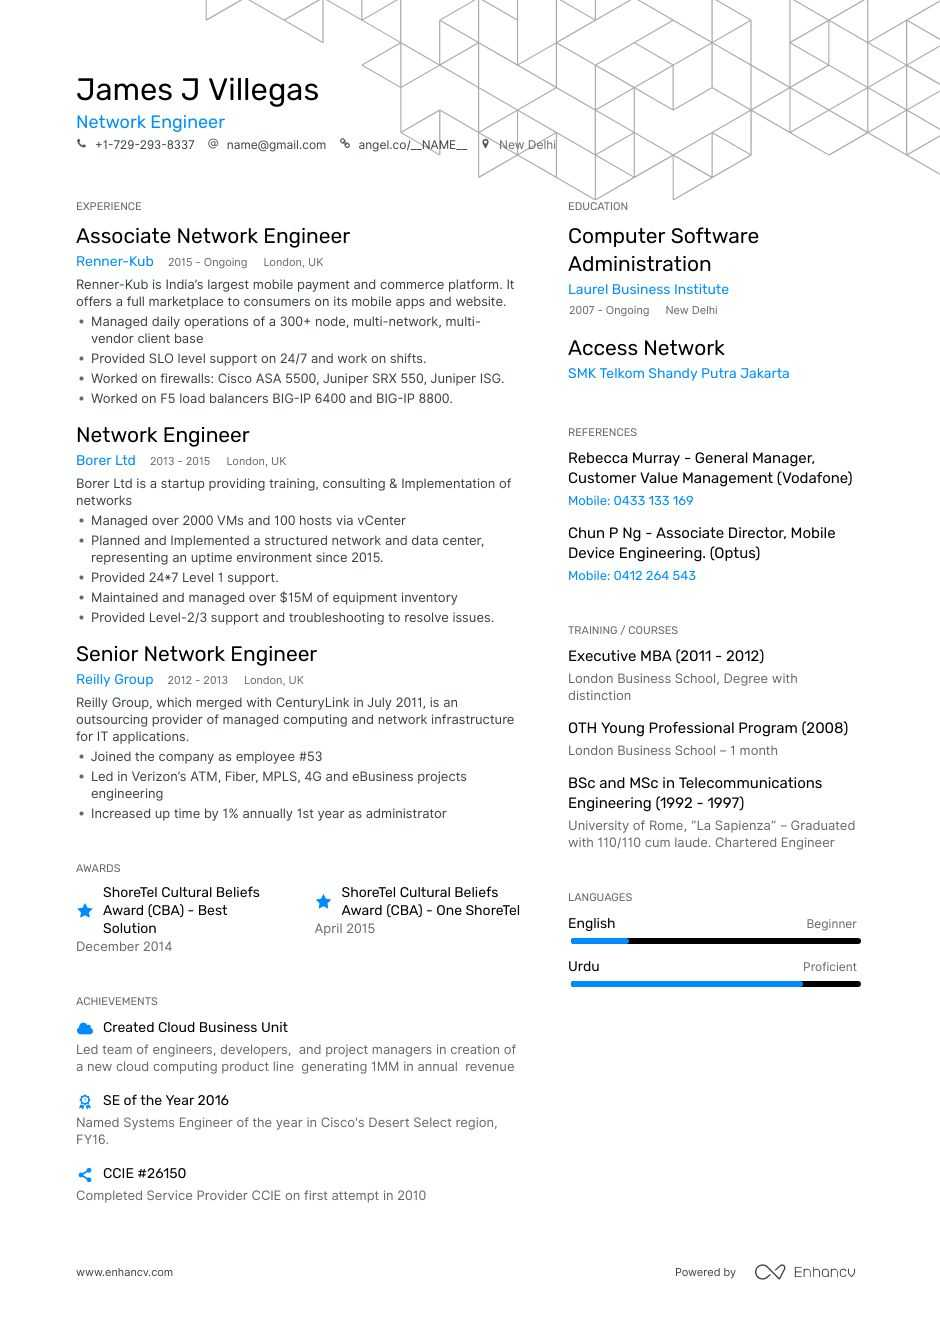 network engineer resume step ultimate guide for enhancv title high school student example Resume Resume Title For Network Engineer